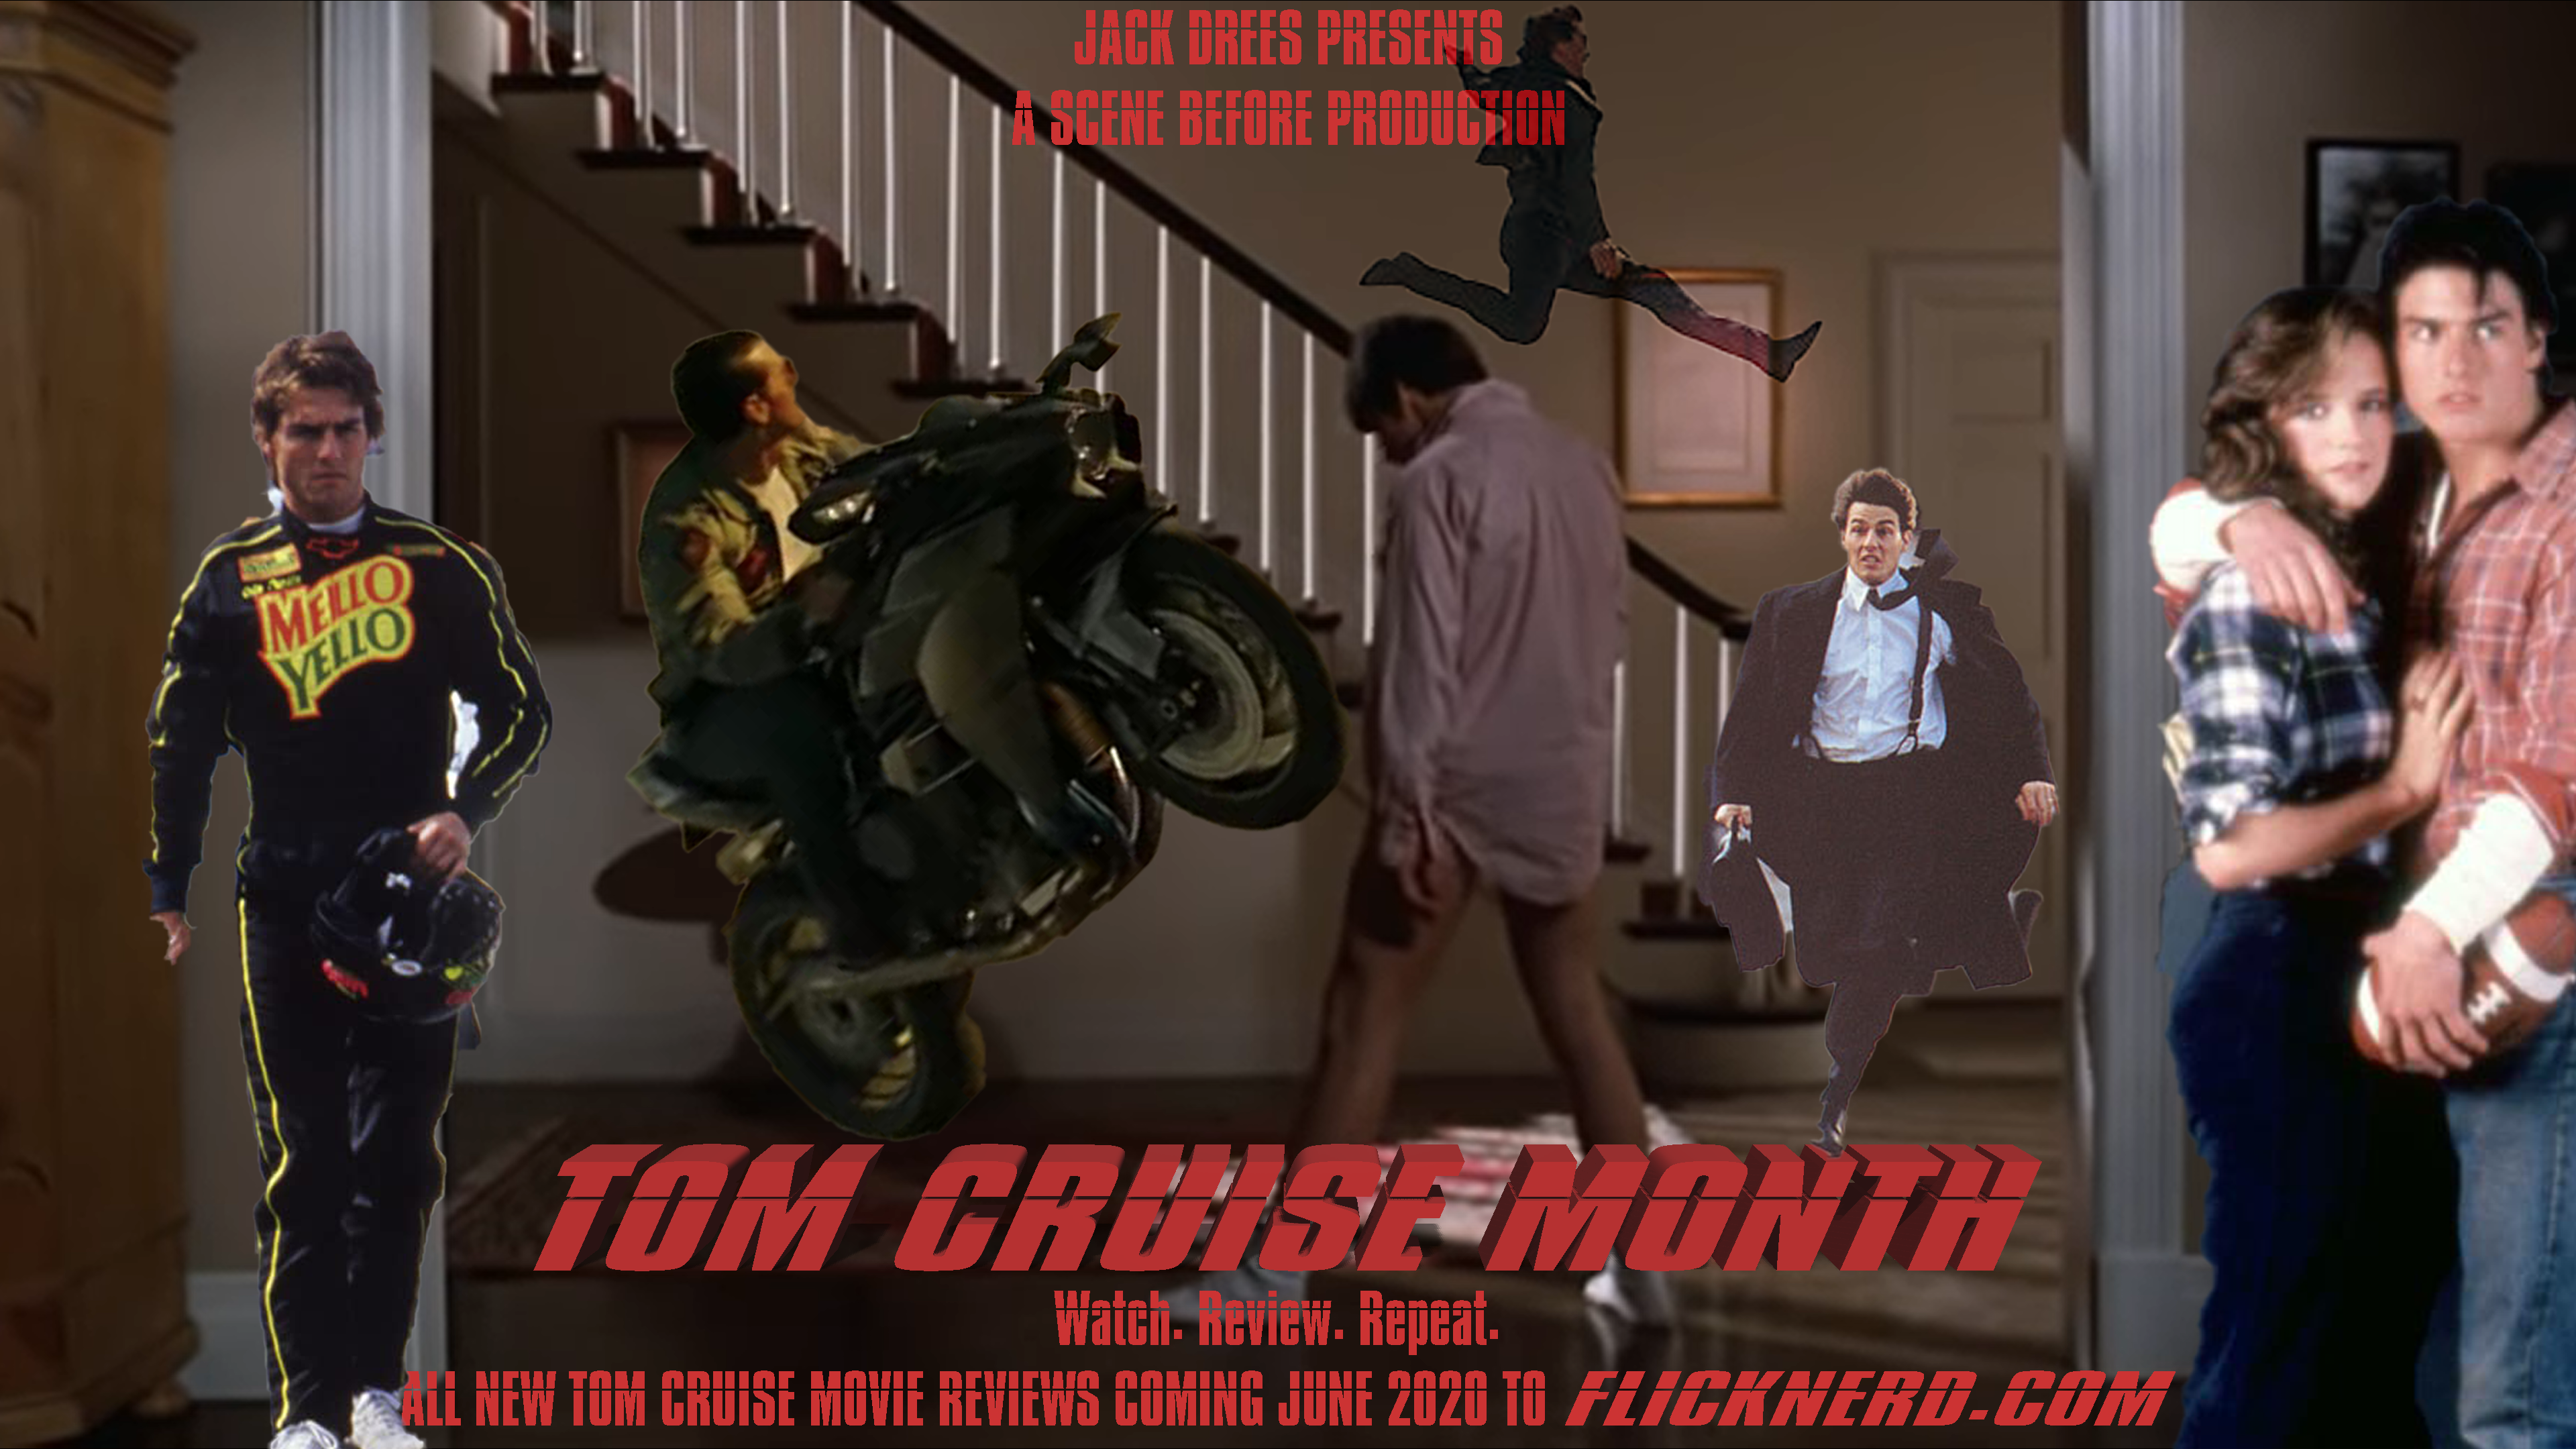 TOM CRUISE MONTH POSTER